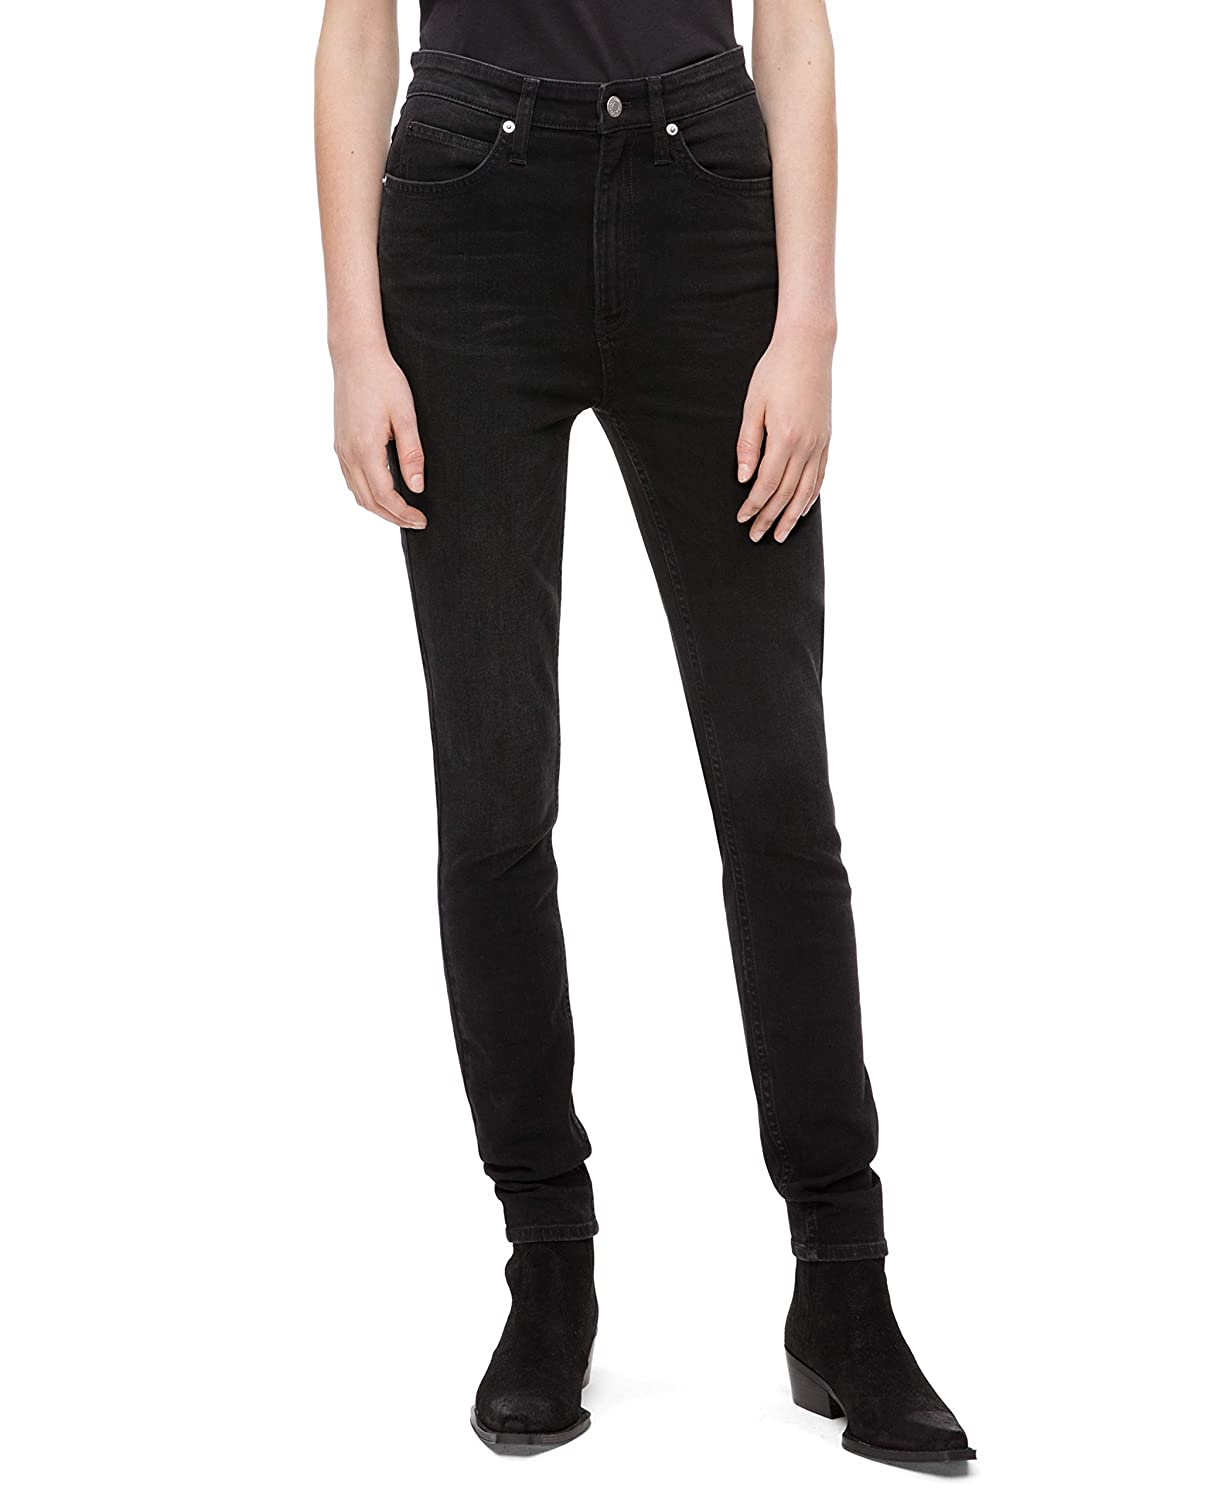 4ee33bb1bf5cf1 Calvin Klein Women's High Rise Skinny Fit Jeans at Amazon Women's Jeans  store